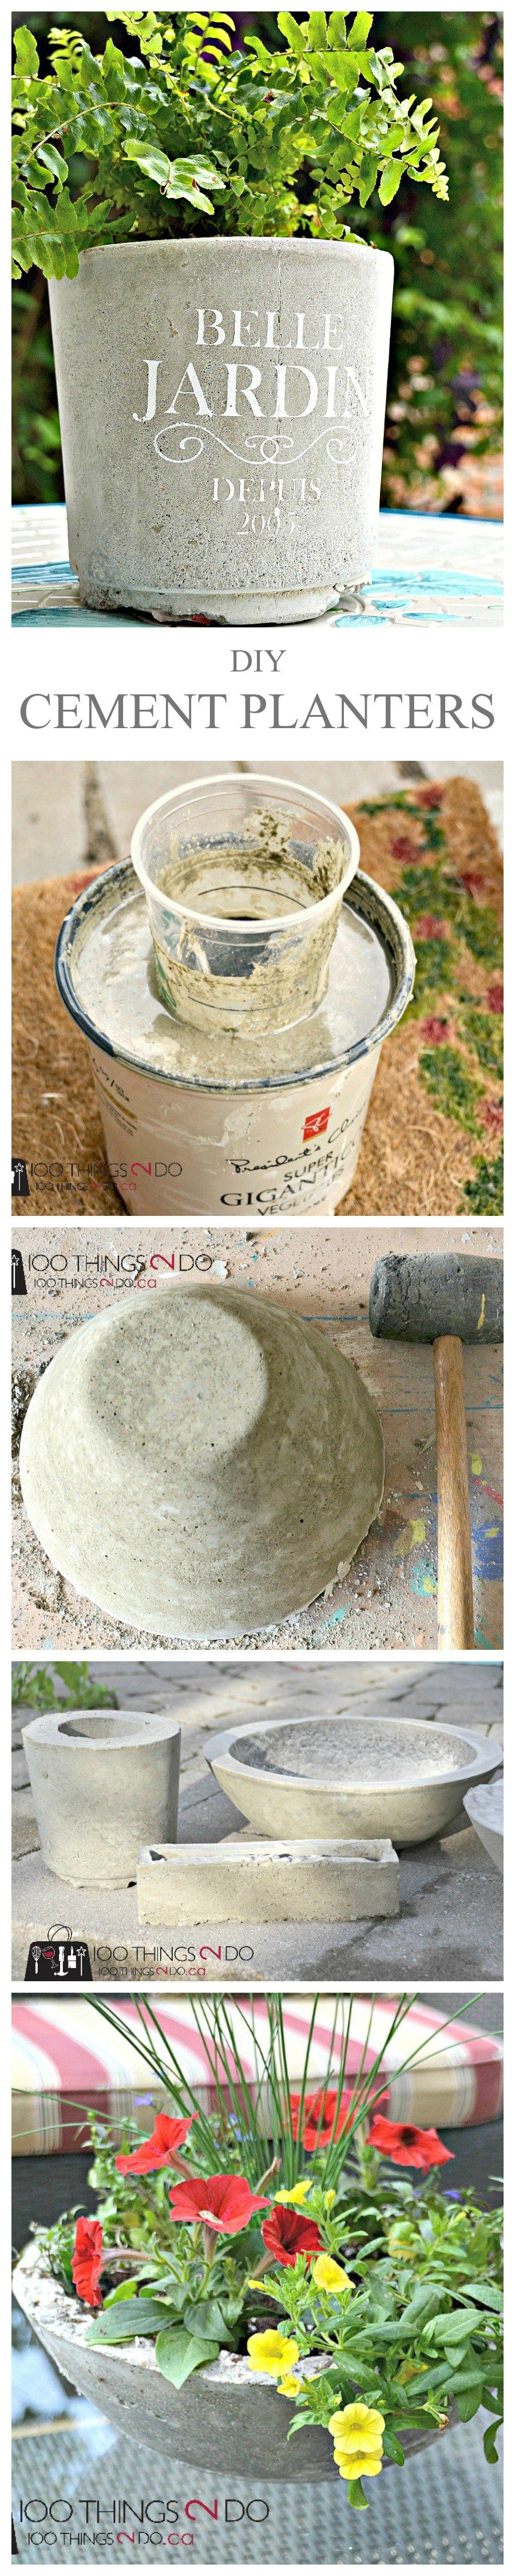 DIY Cement Planter | Diy concrete planters, Cement planters and ...